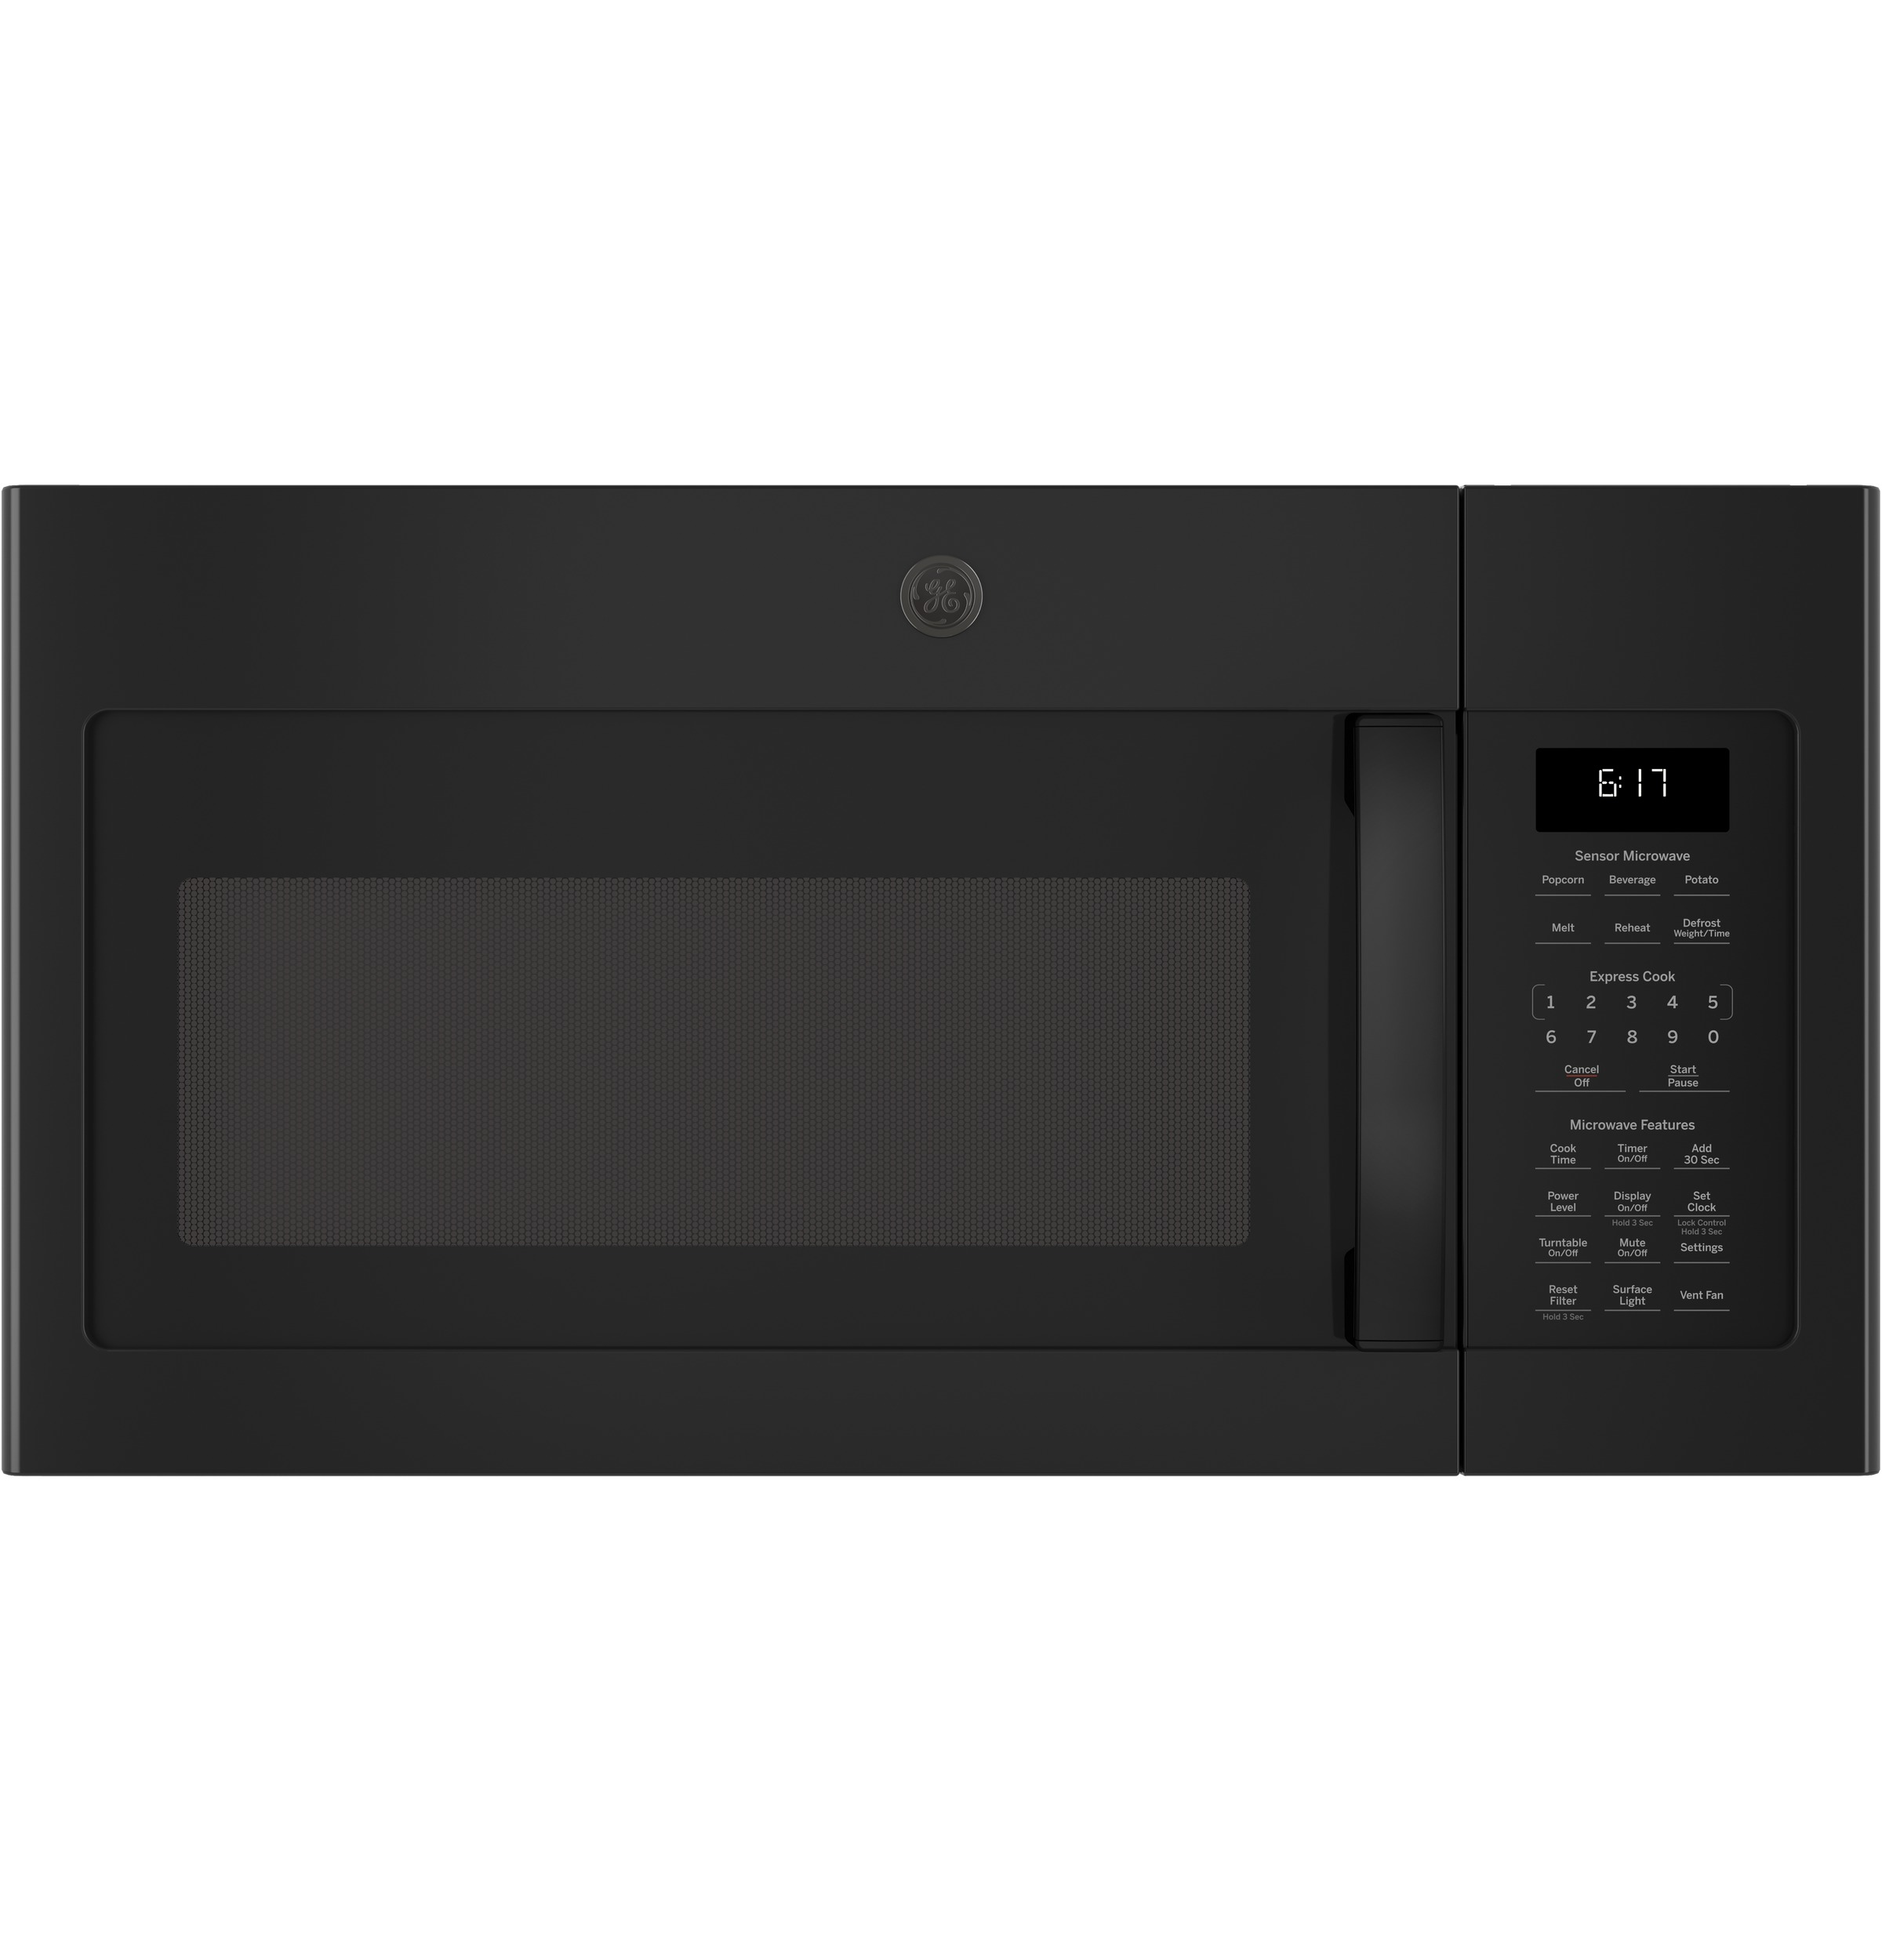 GE GE® 1.7 Cu. Ft. Over-the-Range Microwave Oven